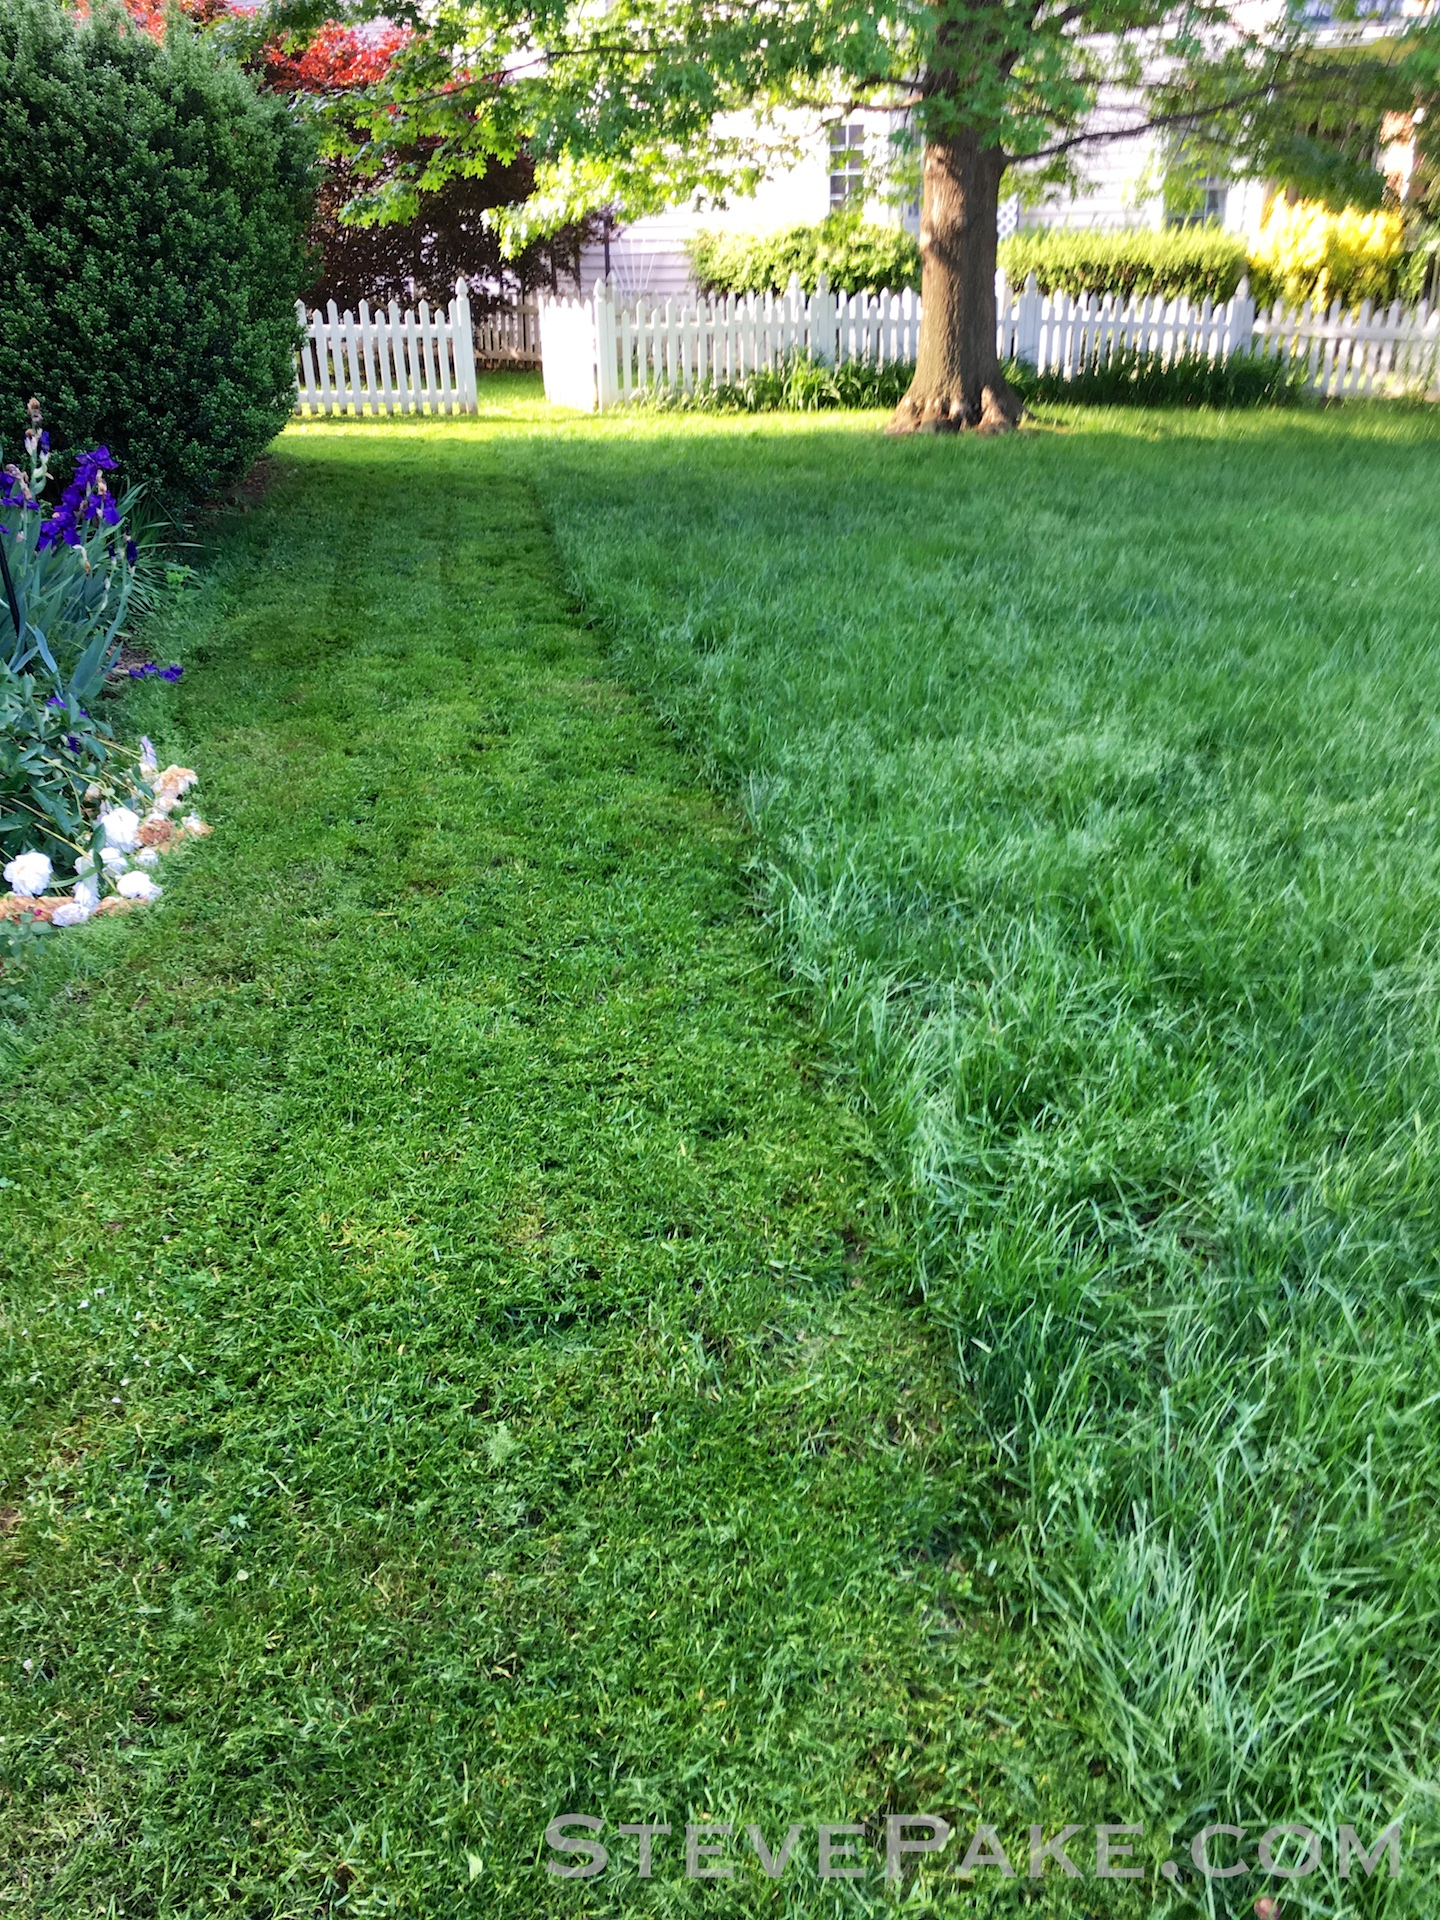 Very long and still somewhat wet grass, but no choice but to mow because it was going to rain even more!